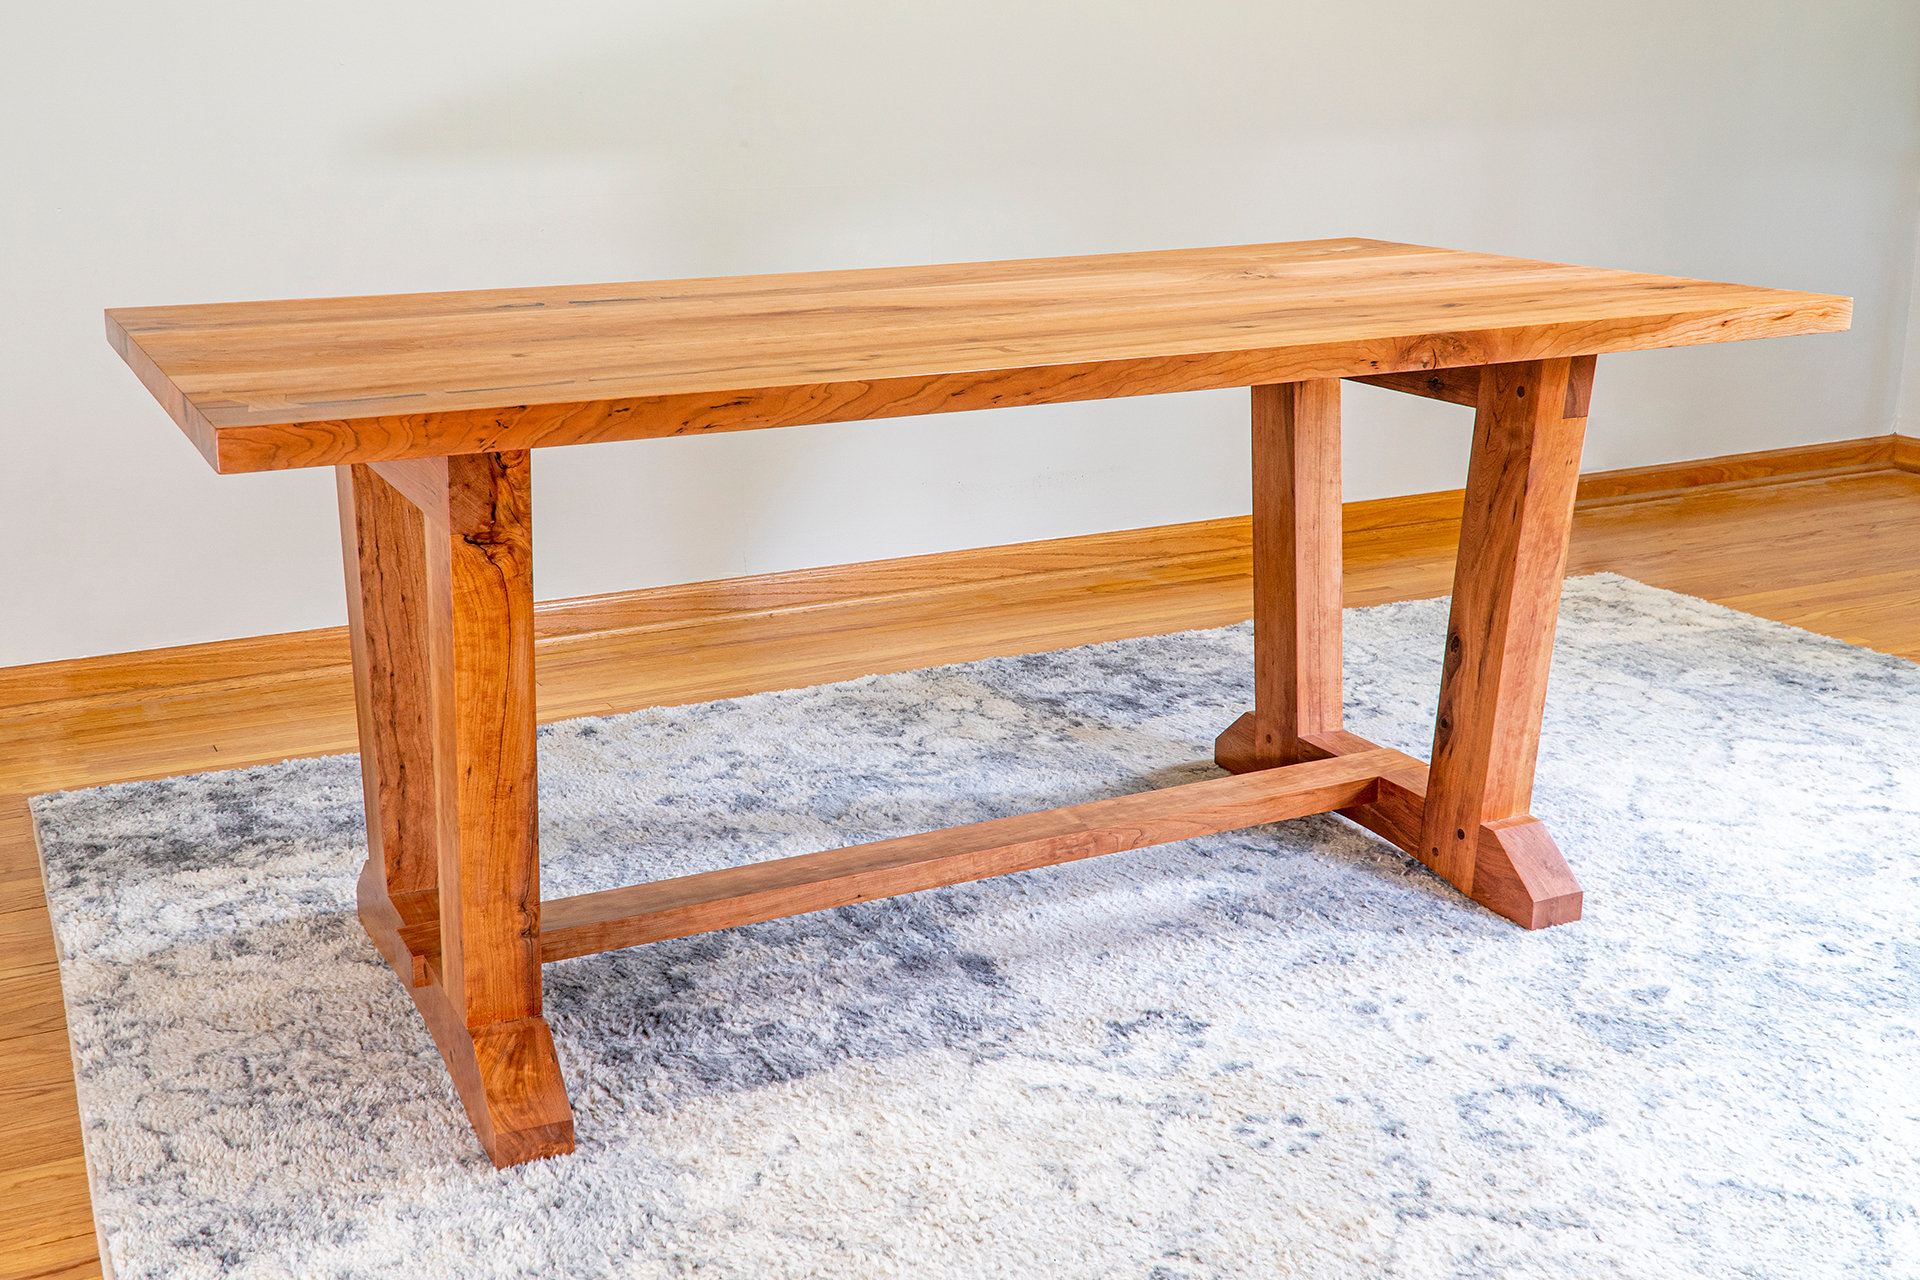 Trestle Table Collapsible Dining Plans Gunflintdesigns